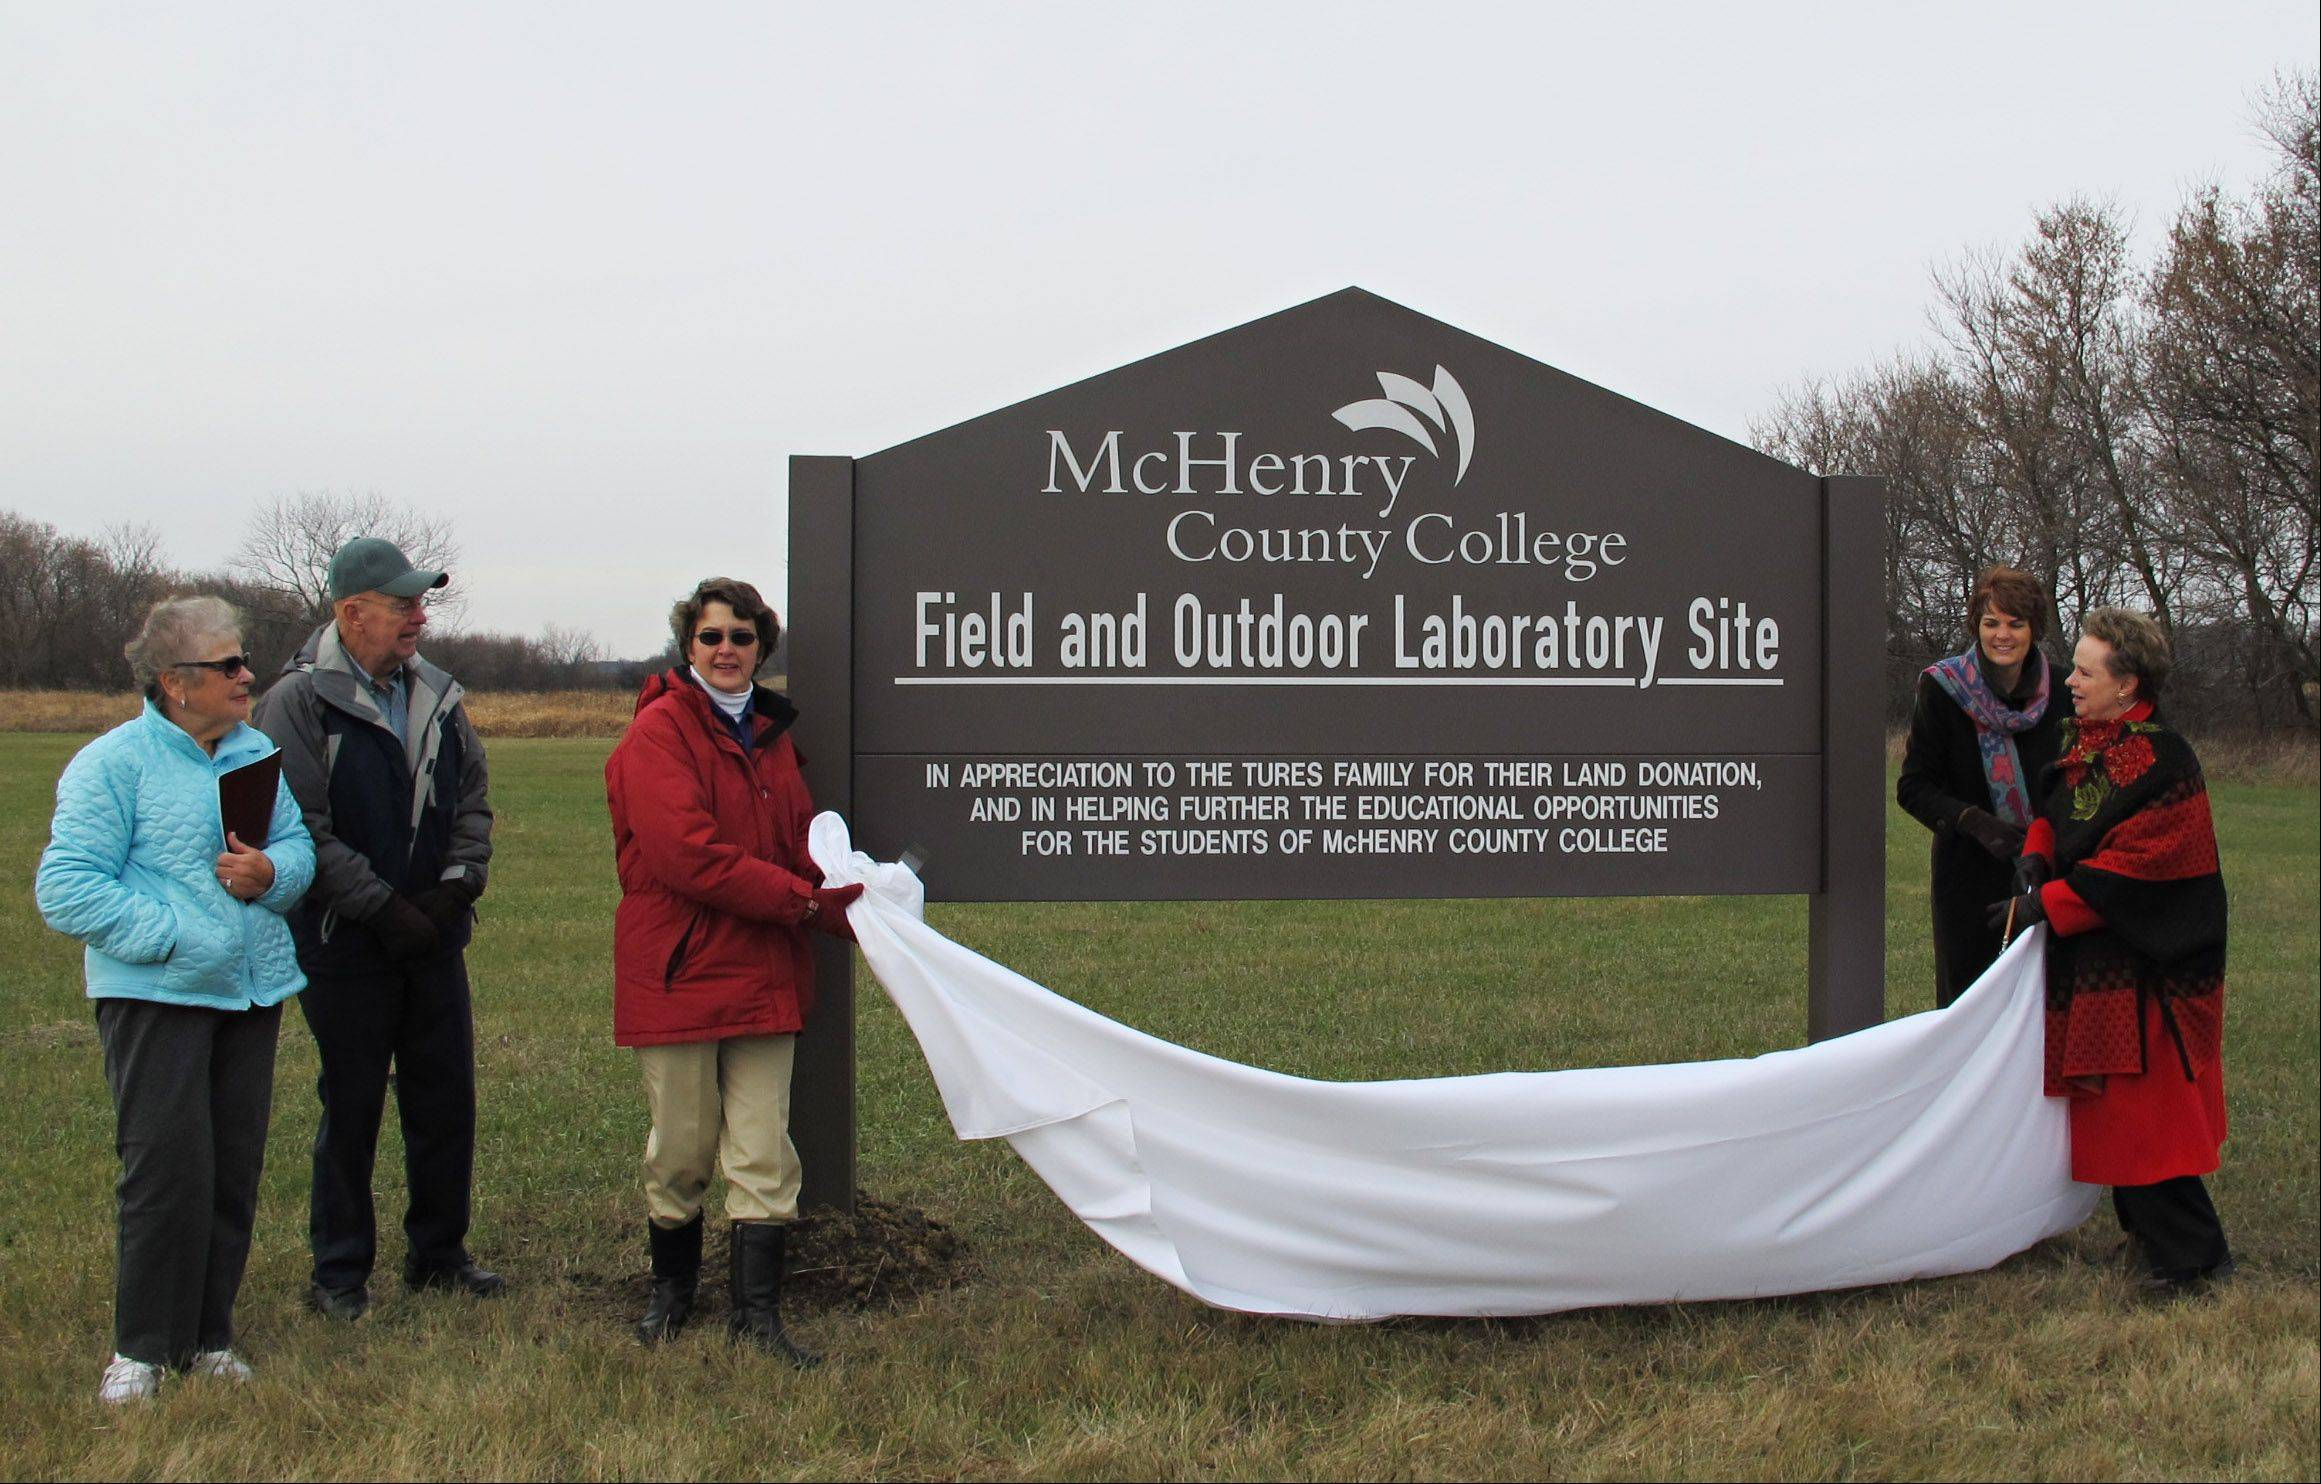 Margaret and John Tures of Huntley watch as McHenry County College officials unveil a sign on Wednesday during a dedication ceremony for a 9.7-acre parcel of land in Chemung donated by the Tures family to the Friends of McHenry County College Foundation. Pictured are, from left, Margaret and John Tures, biology instructor Bev Dow, executive dean of math, sciences and health professions Amy Maxeiner, and MCC President Vicky Smith.